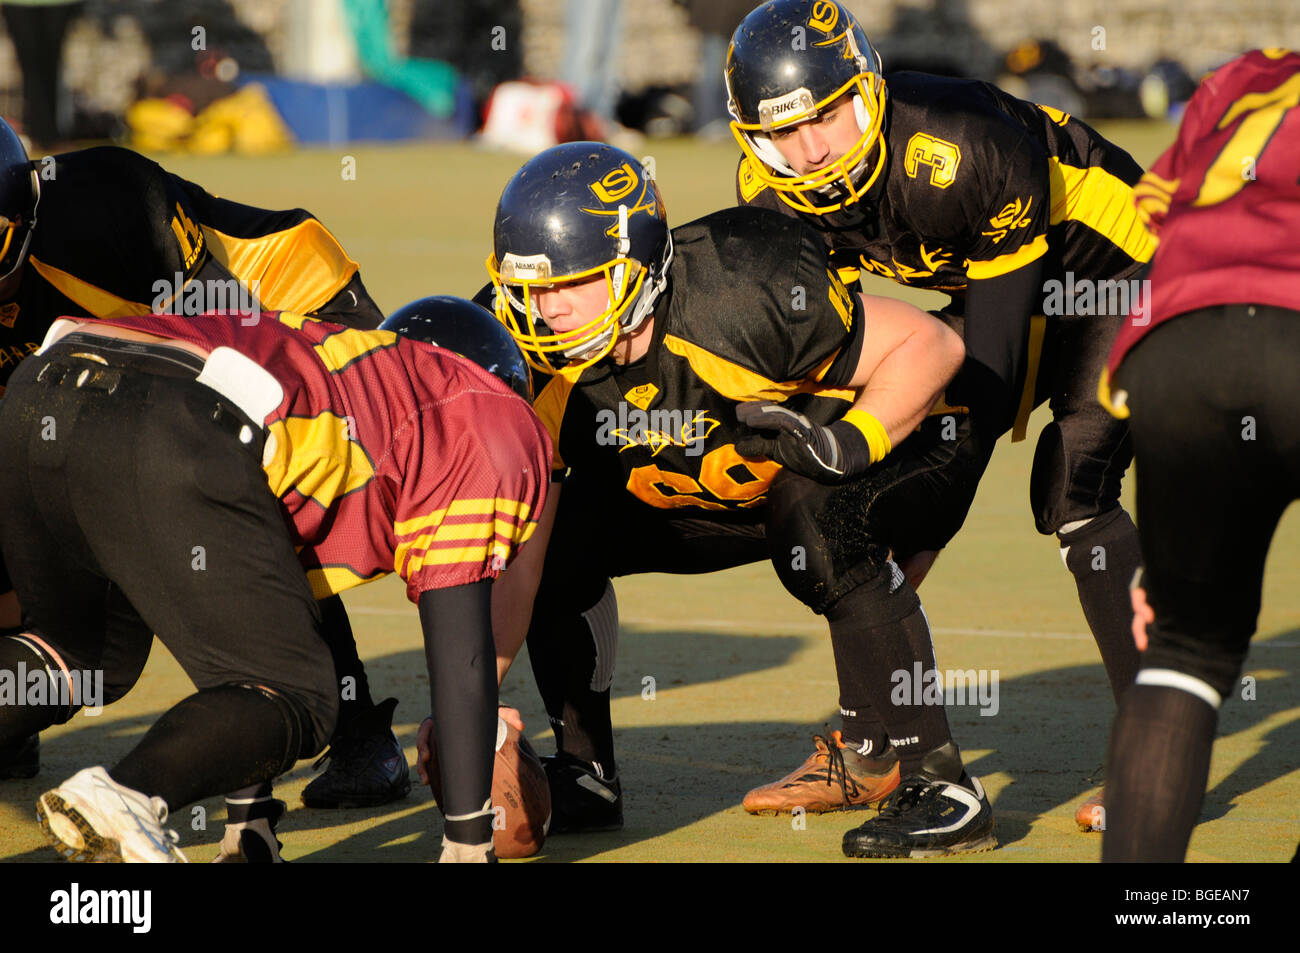 Center and Quarterback of Sheffield Sabres, Sheffield University American Football team. - Stock Image